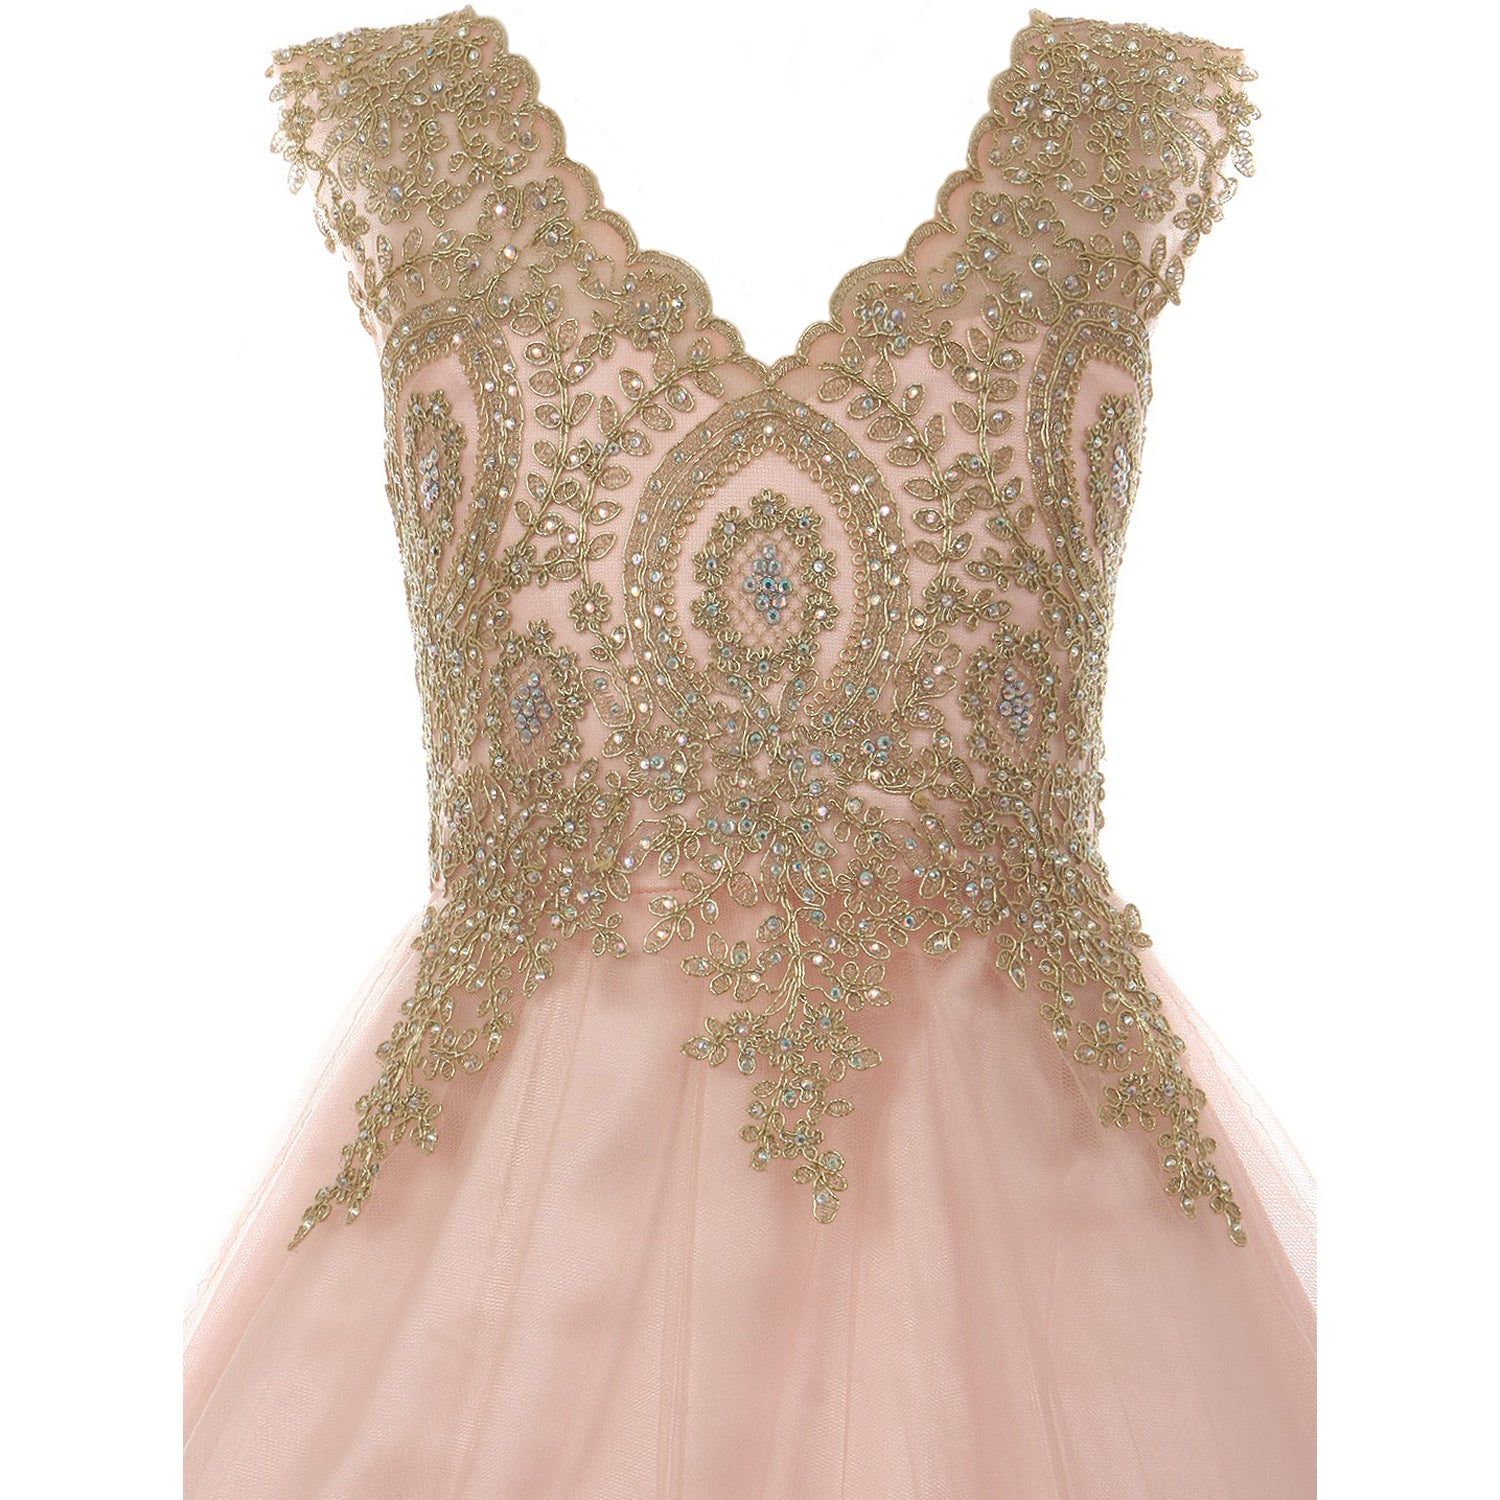 GOLD COILED LACE BODICE